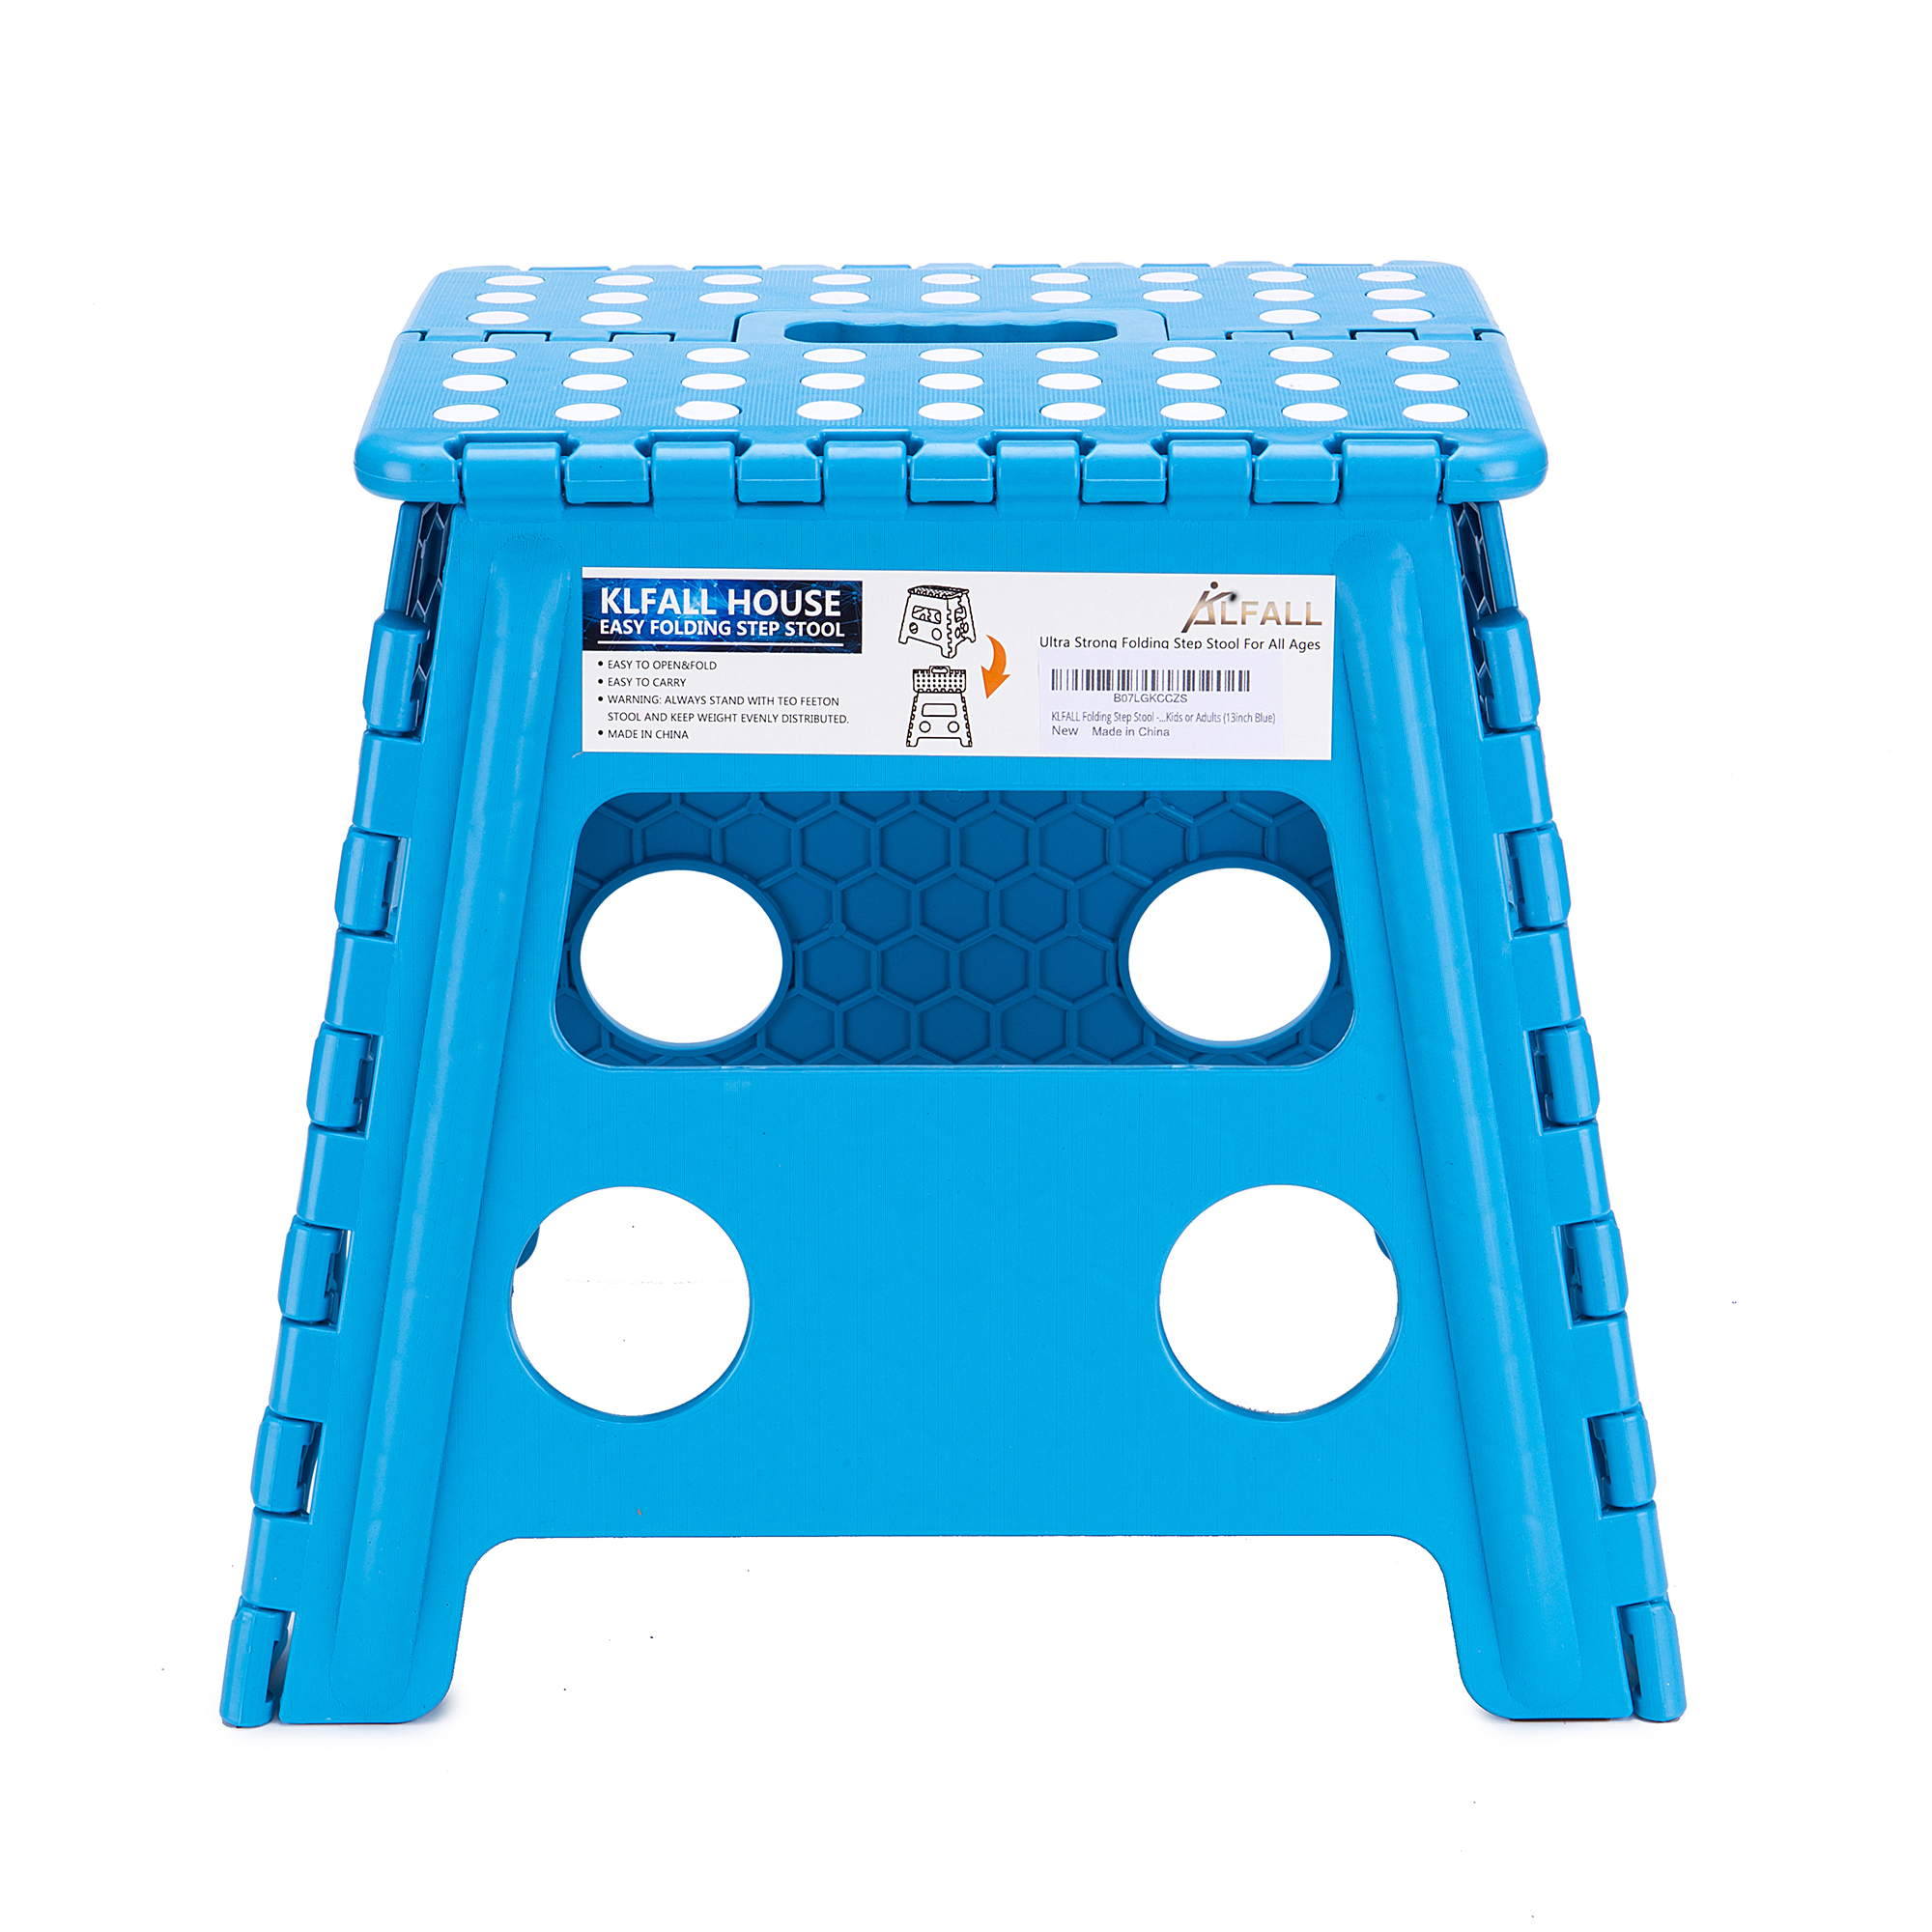 Wholesale Folding Step Stool Lightweight Step Stool is Sturdy Enough to Support Adults and Safe Enough for Kids